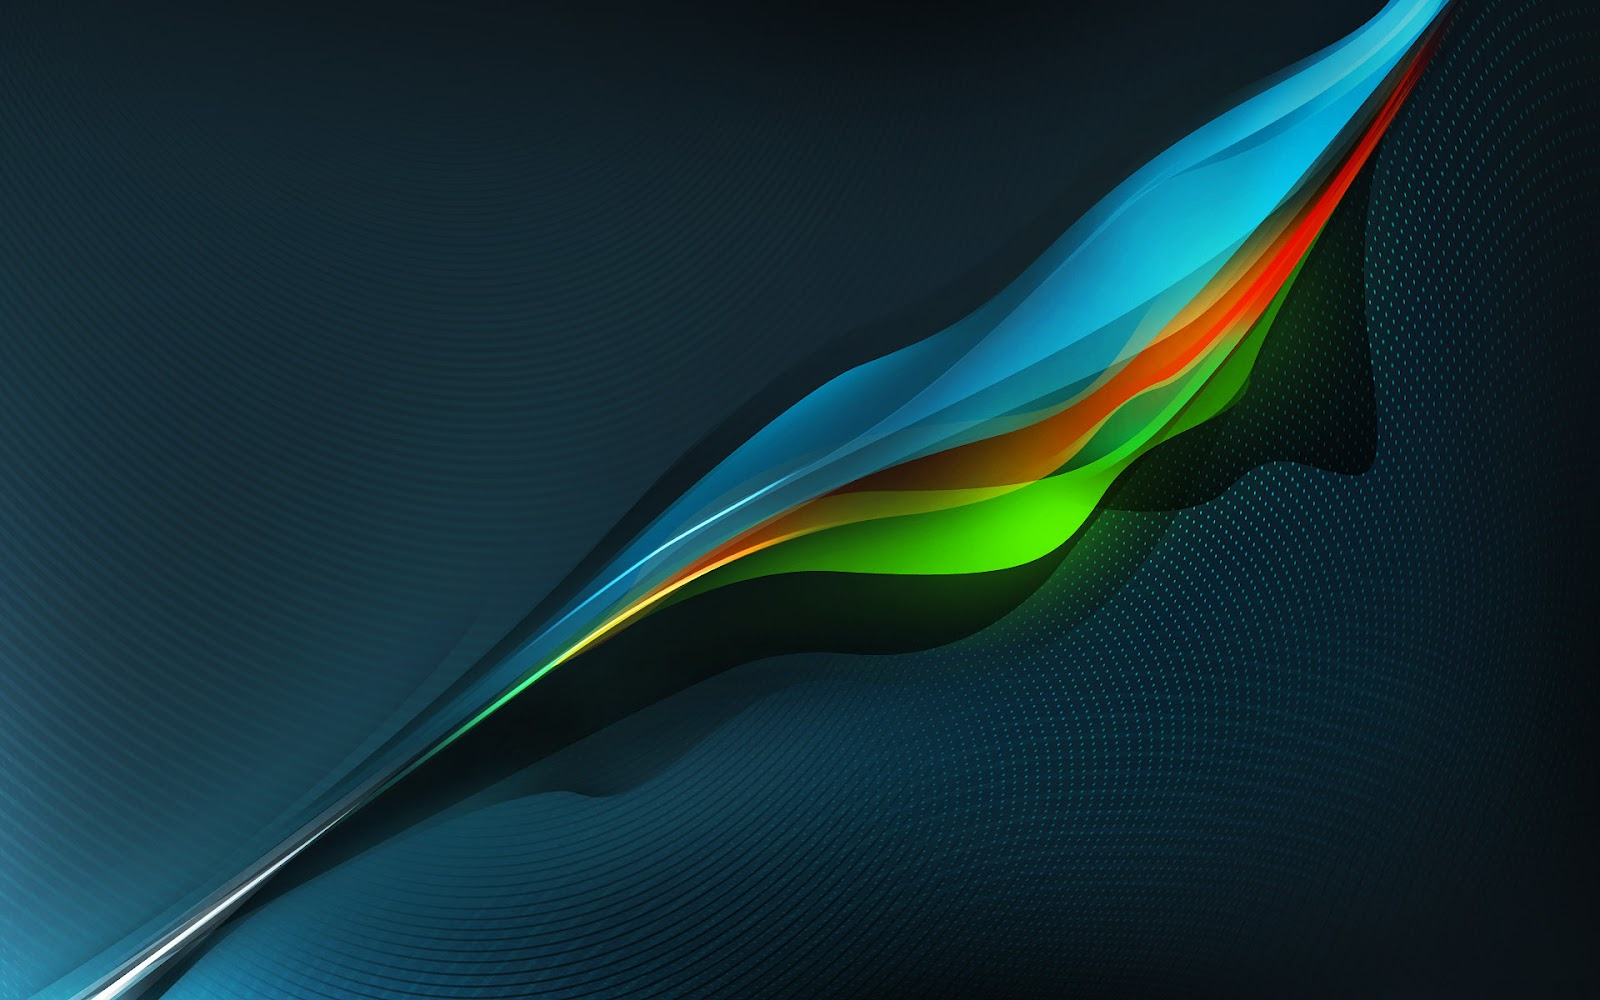 HD Wallpapers: abstract hd wallpapers 1080p